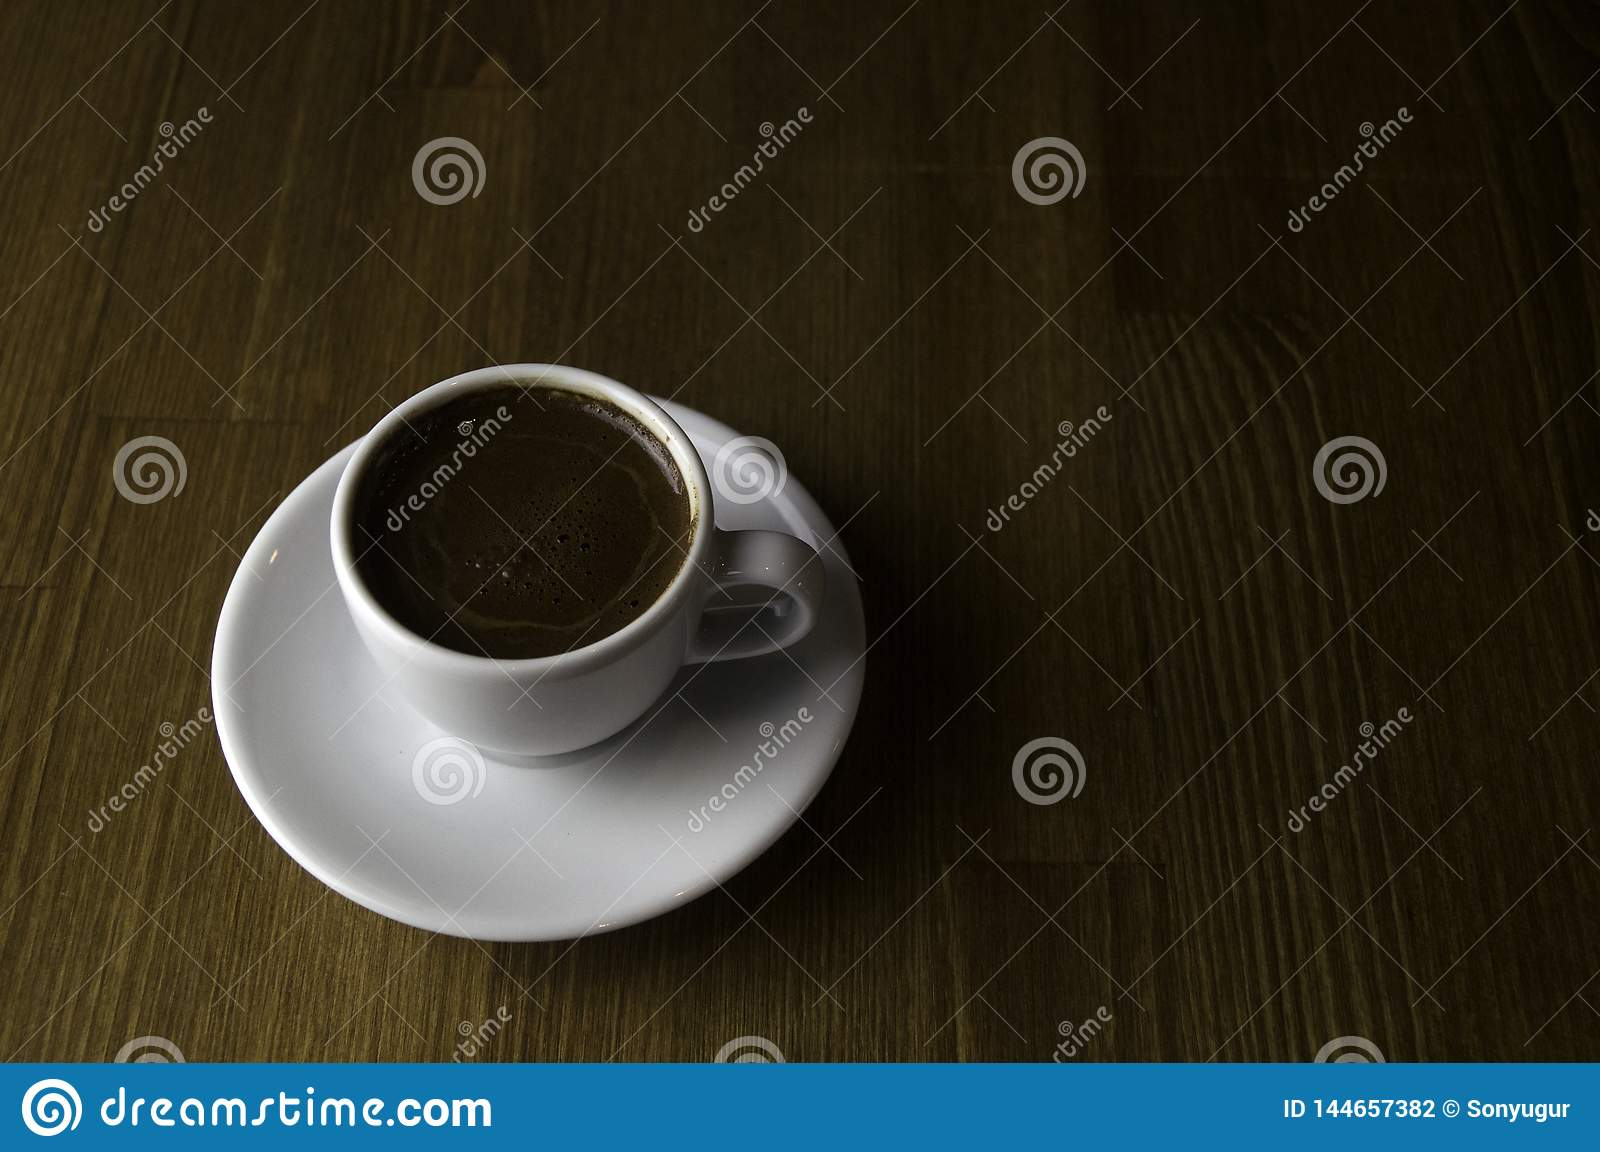 a cup of coffee with milk and brown table